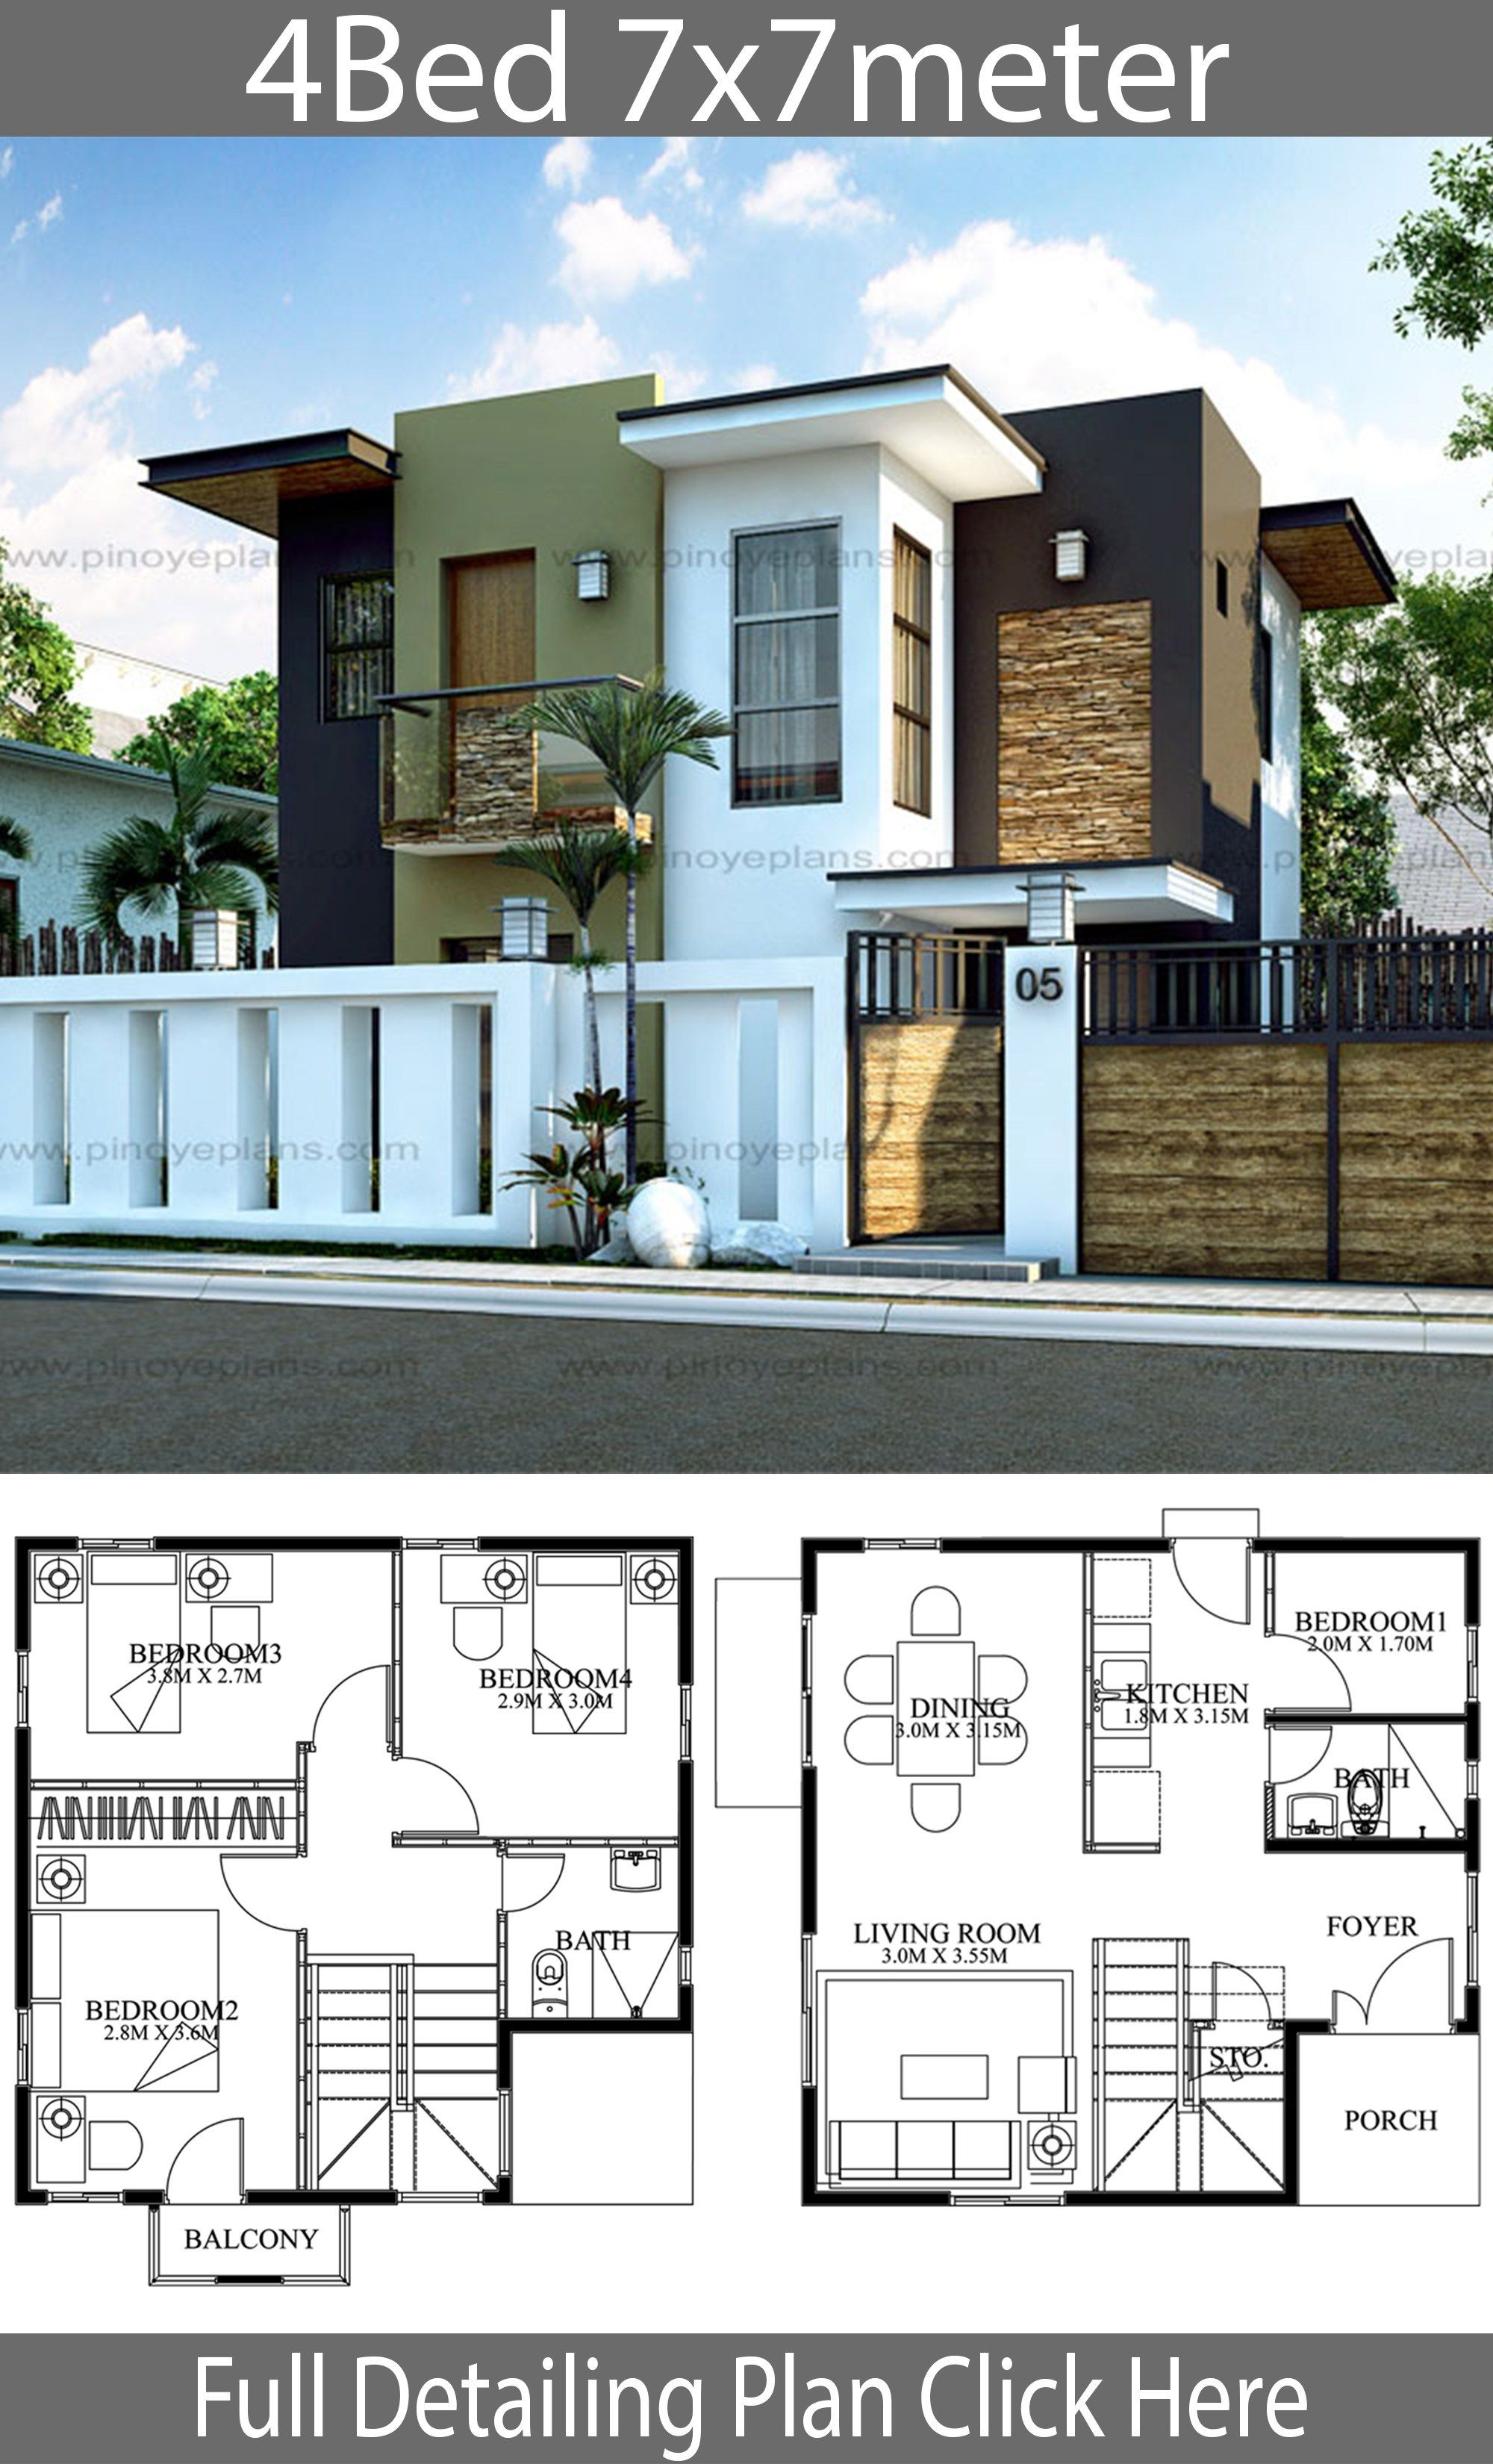 Modern Home Design 7x7m With 4 Bedrooms Style Modern Terrace Slaphouse Description Ground Level Duplex House Design 2 Storey House Design Pool House Designs